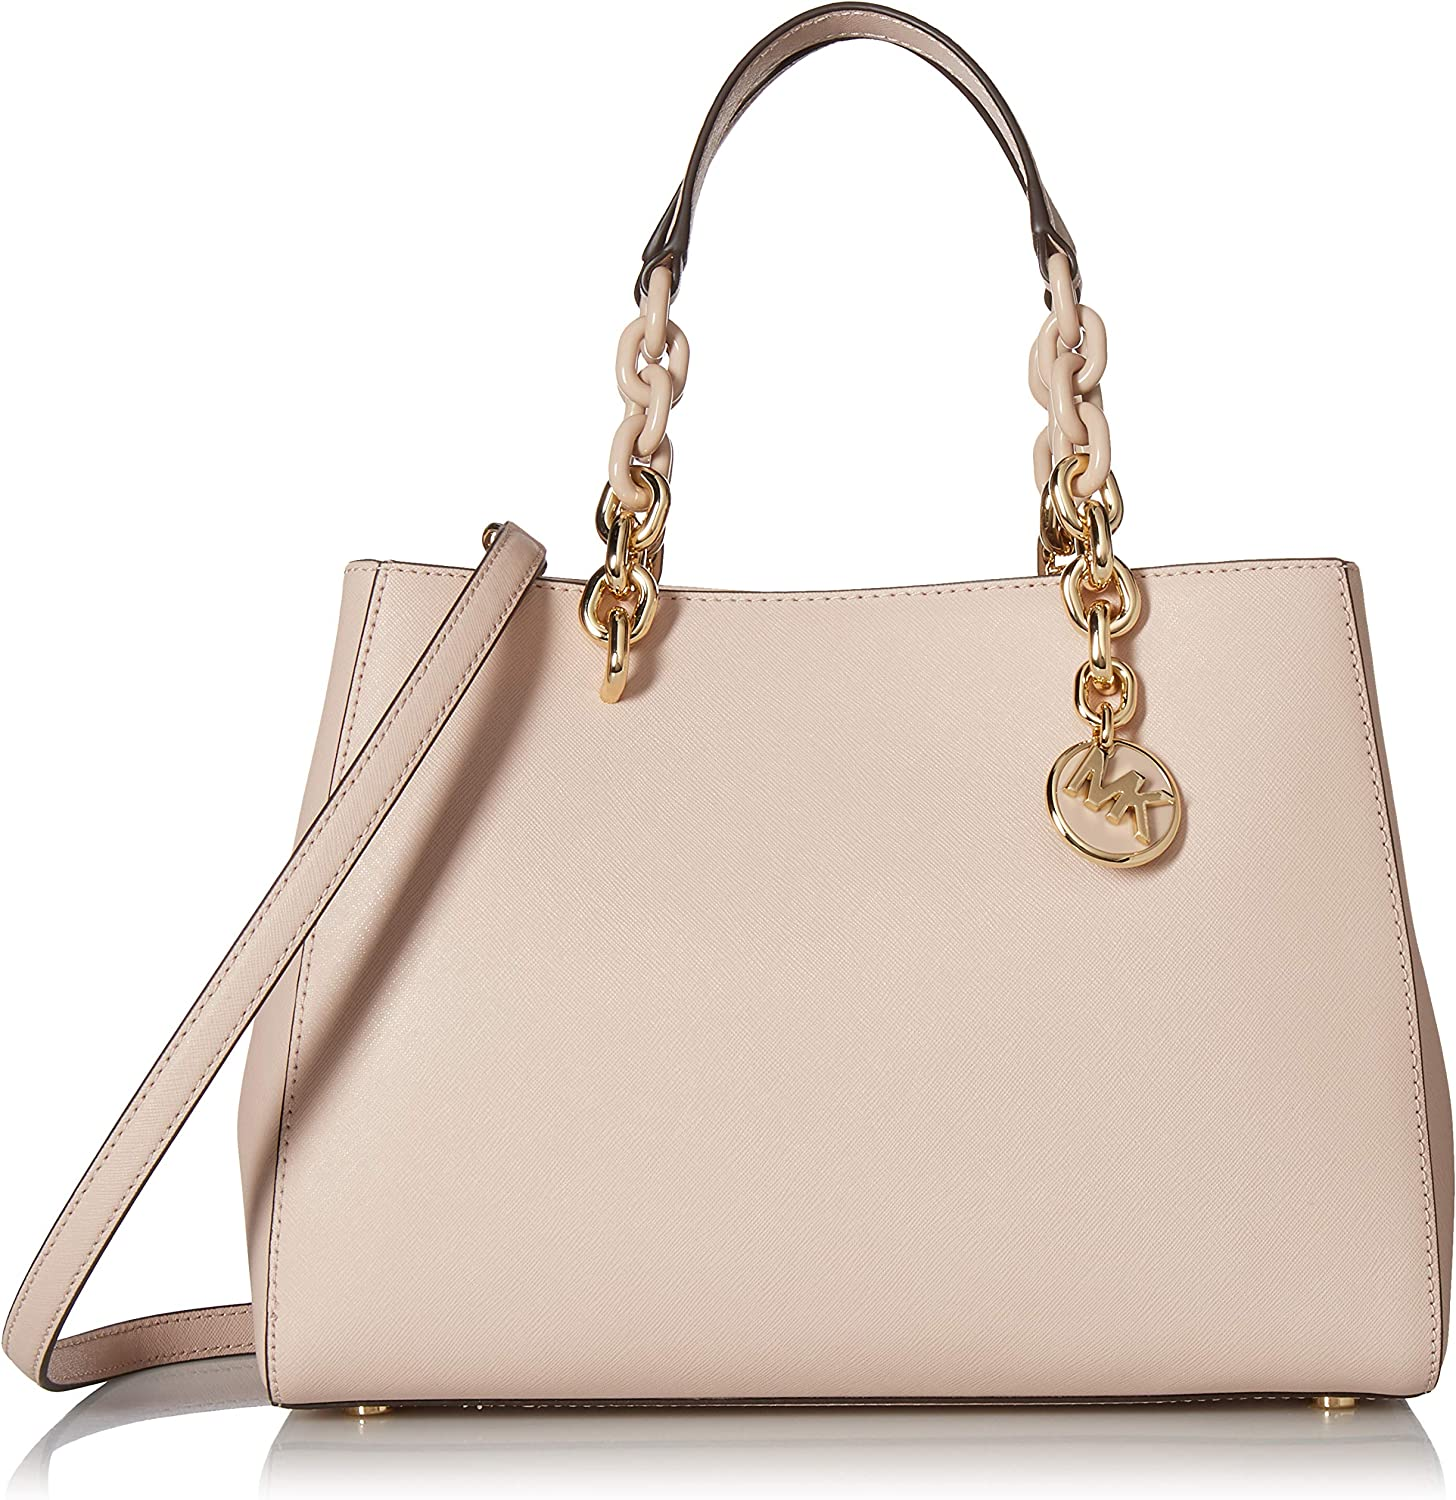 Michael Kors Women's Miami Mall Cynthia Hobos and Shoulder Outlet sale feature Bag